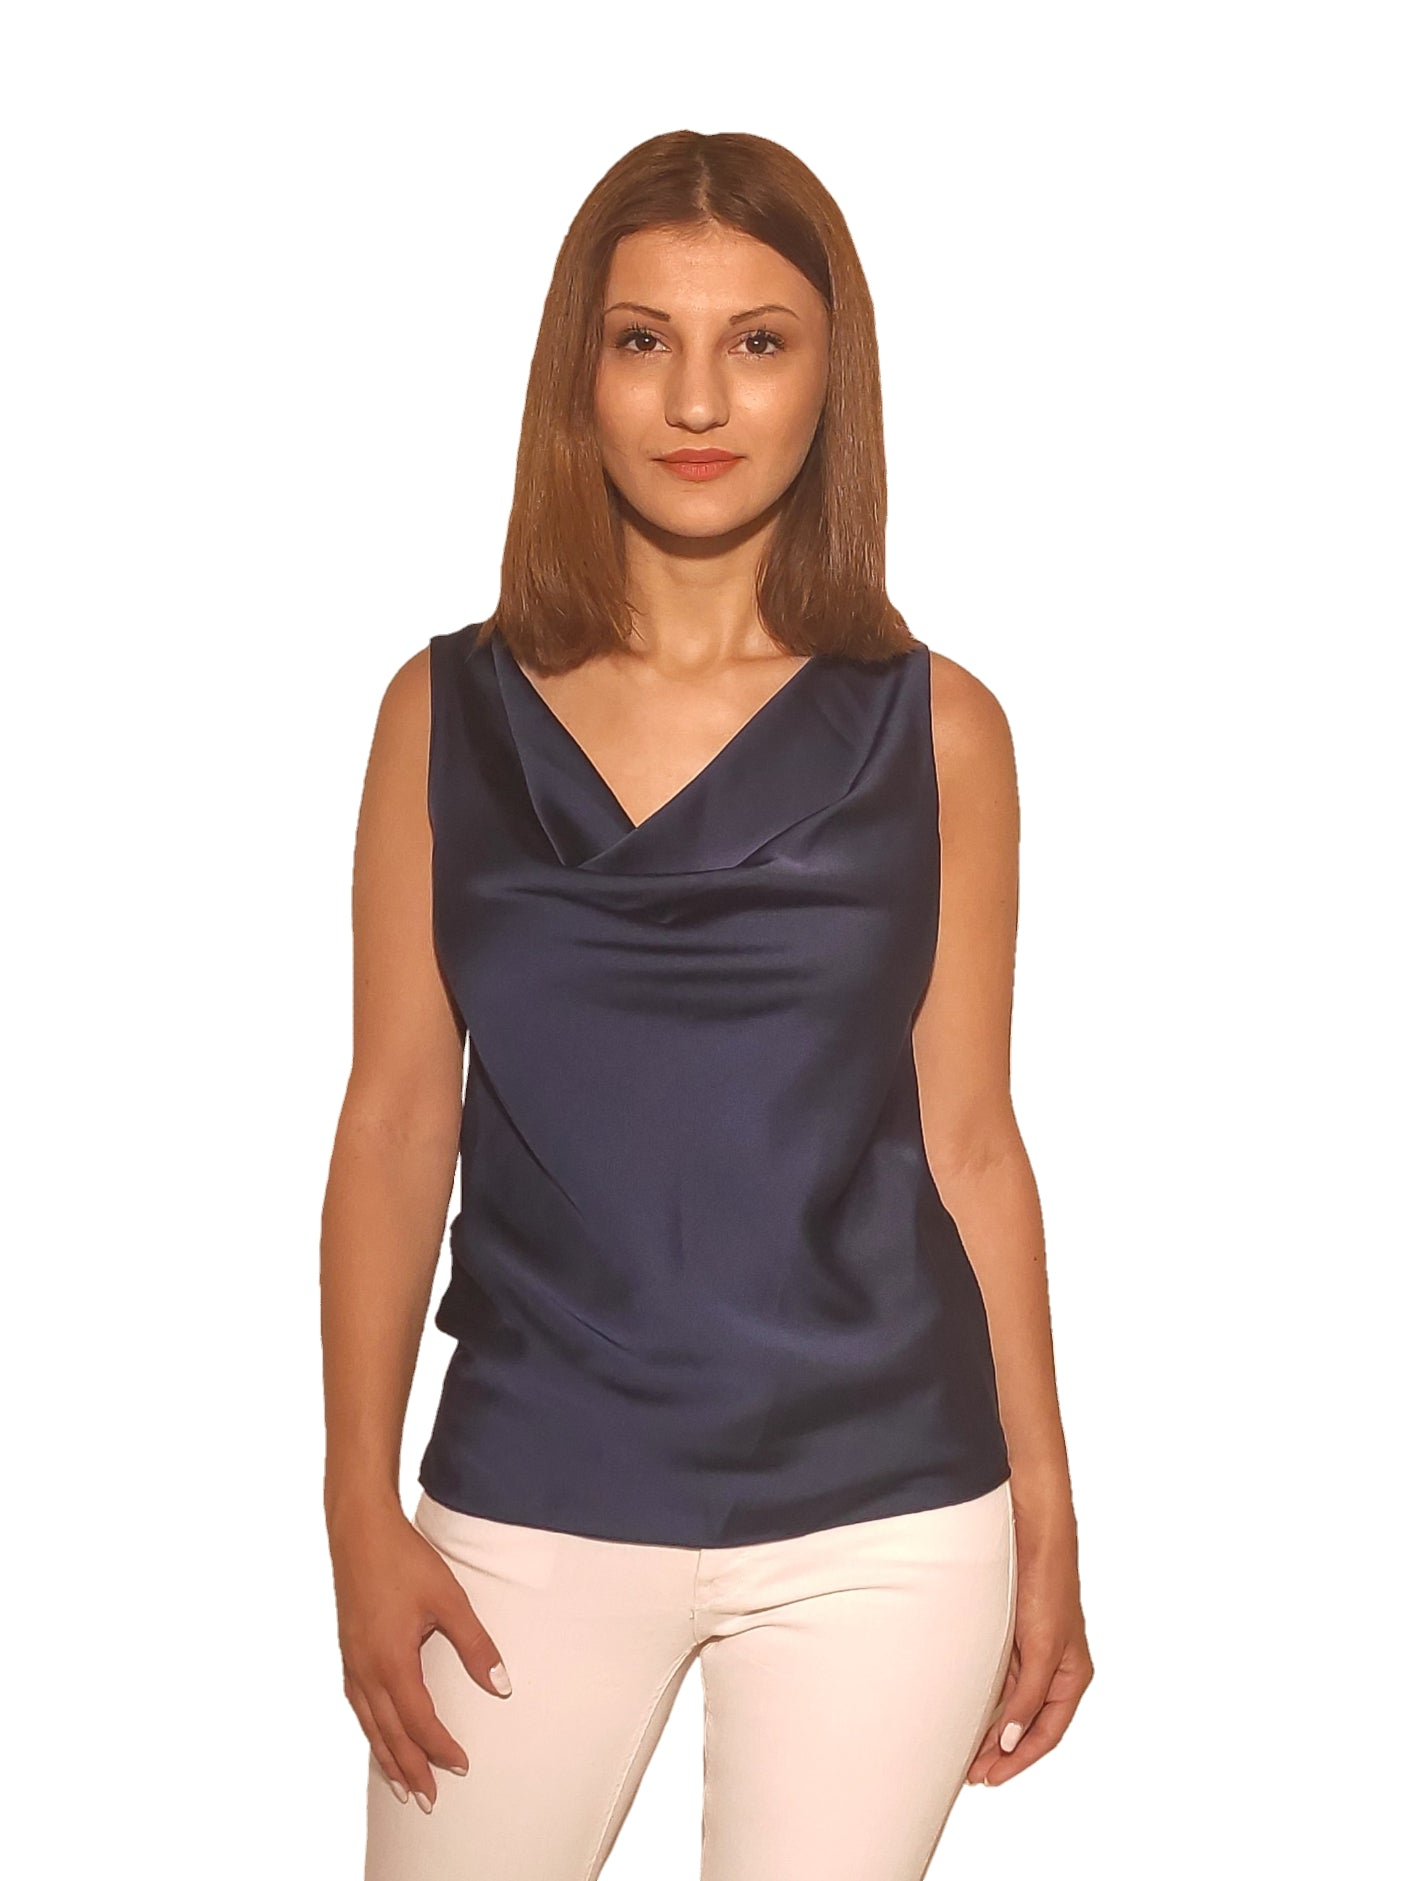 brunet-girl-wears-a-sleeveless-blue-blouse-with-satin-texture-front